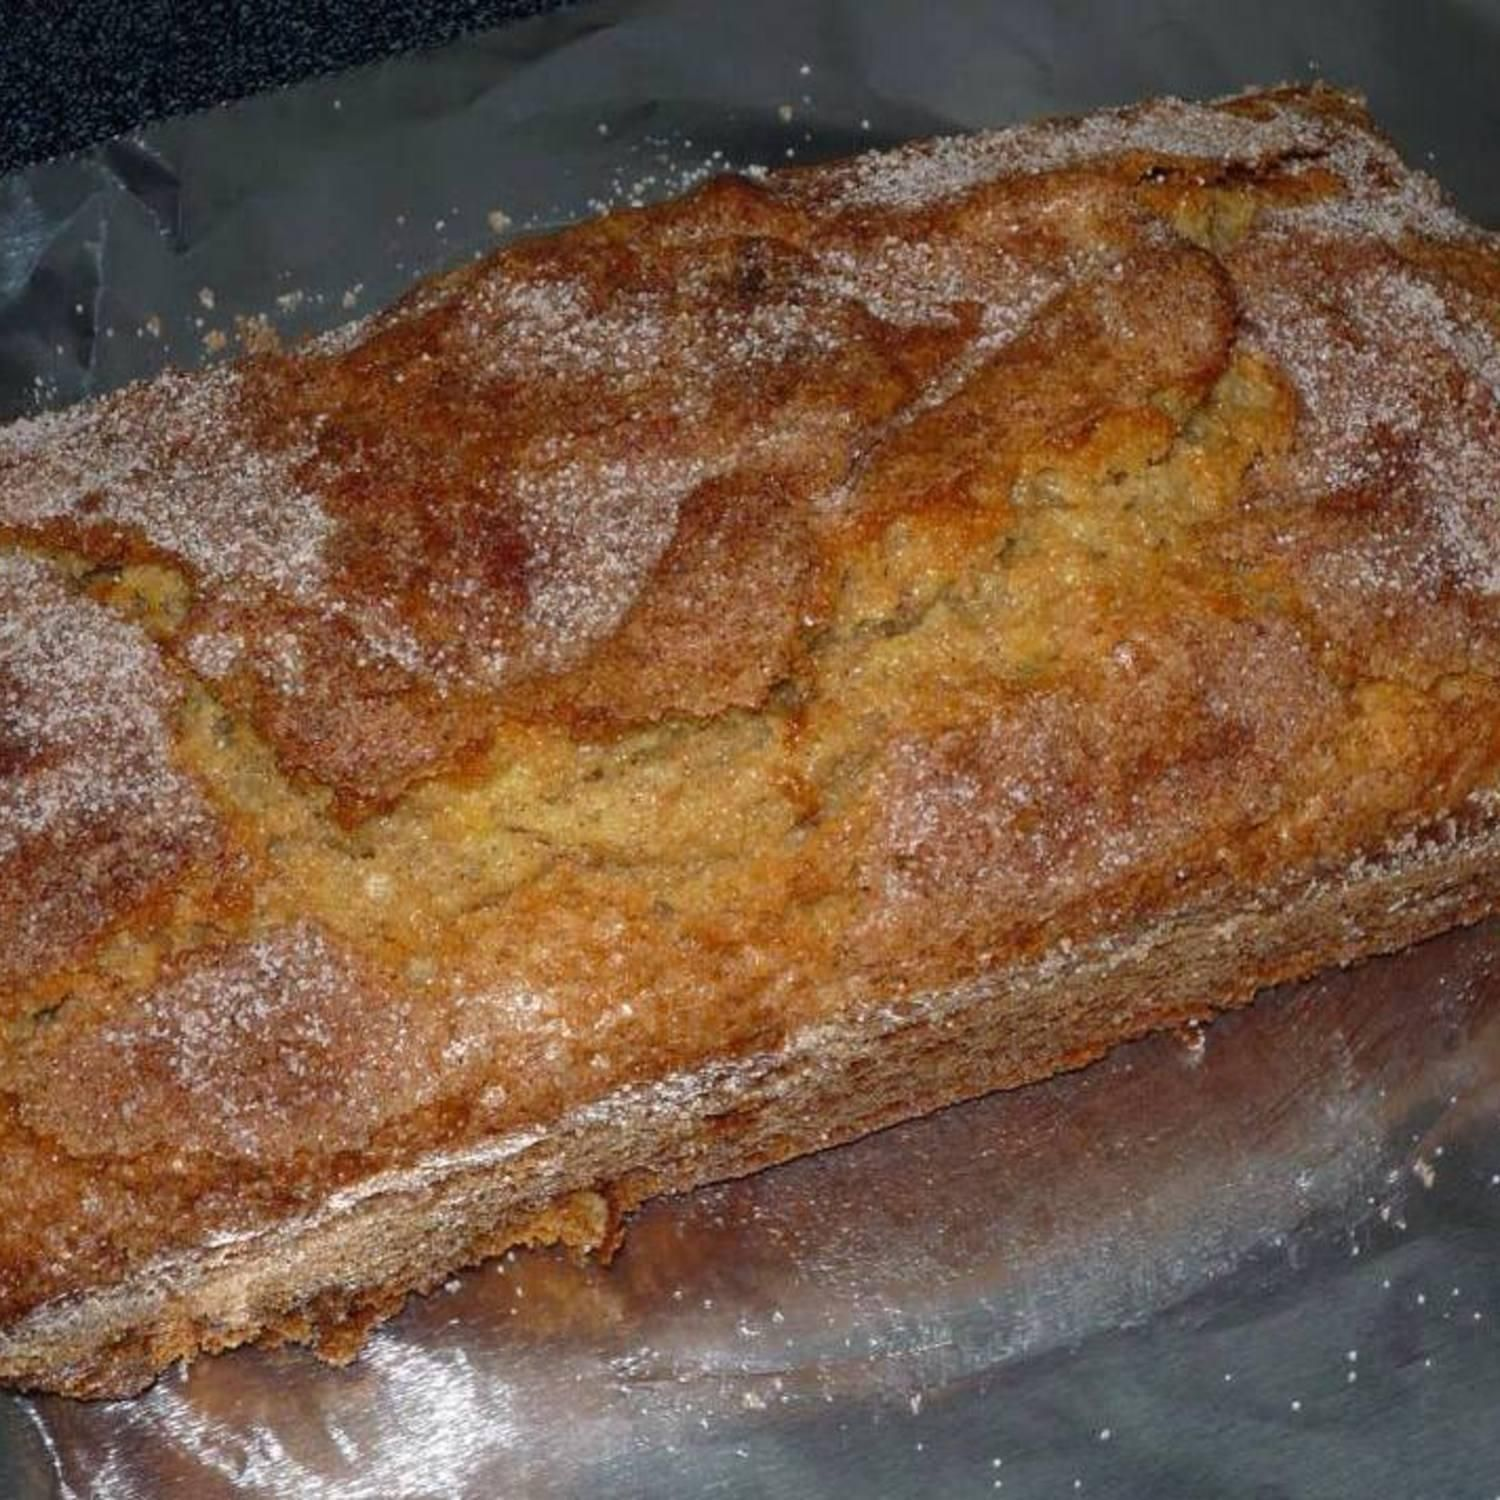 Amish Cinnamon Bread - Debby at Nanny's Place says this is a great recipe.  She makes 2 loaves at a t$ime. --- thankyou to previous pinner for info